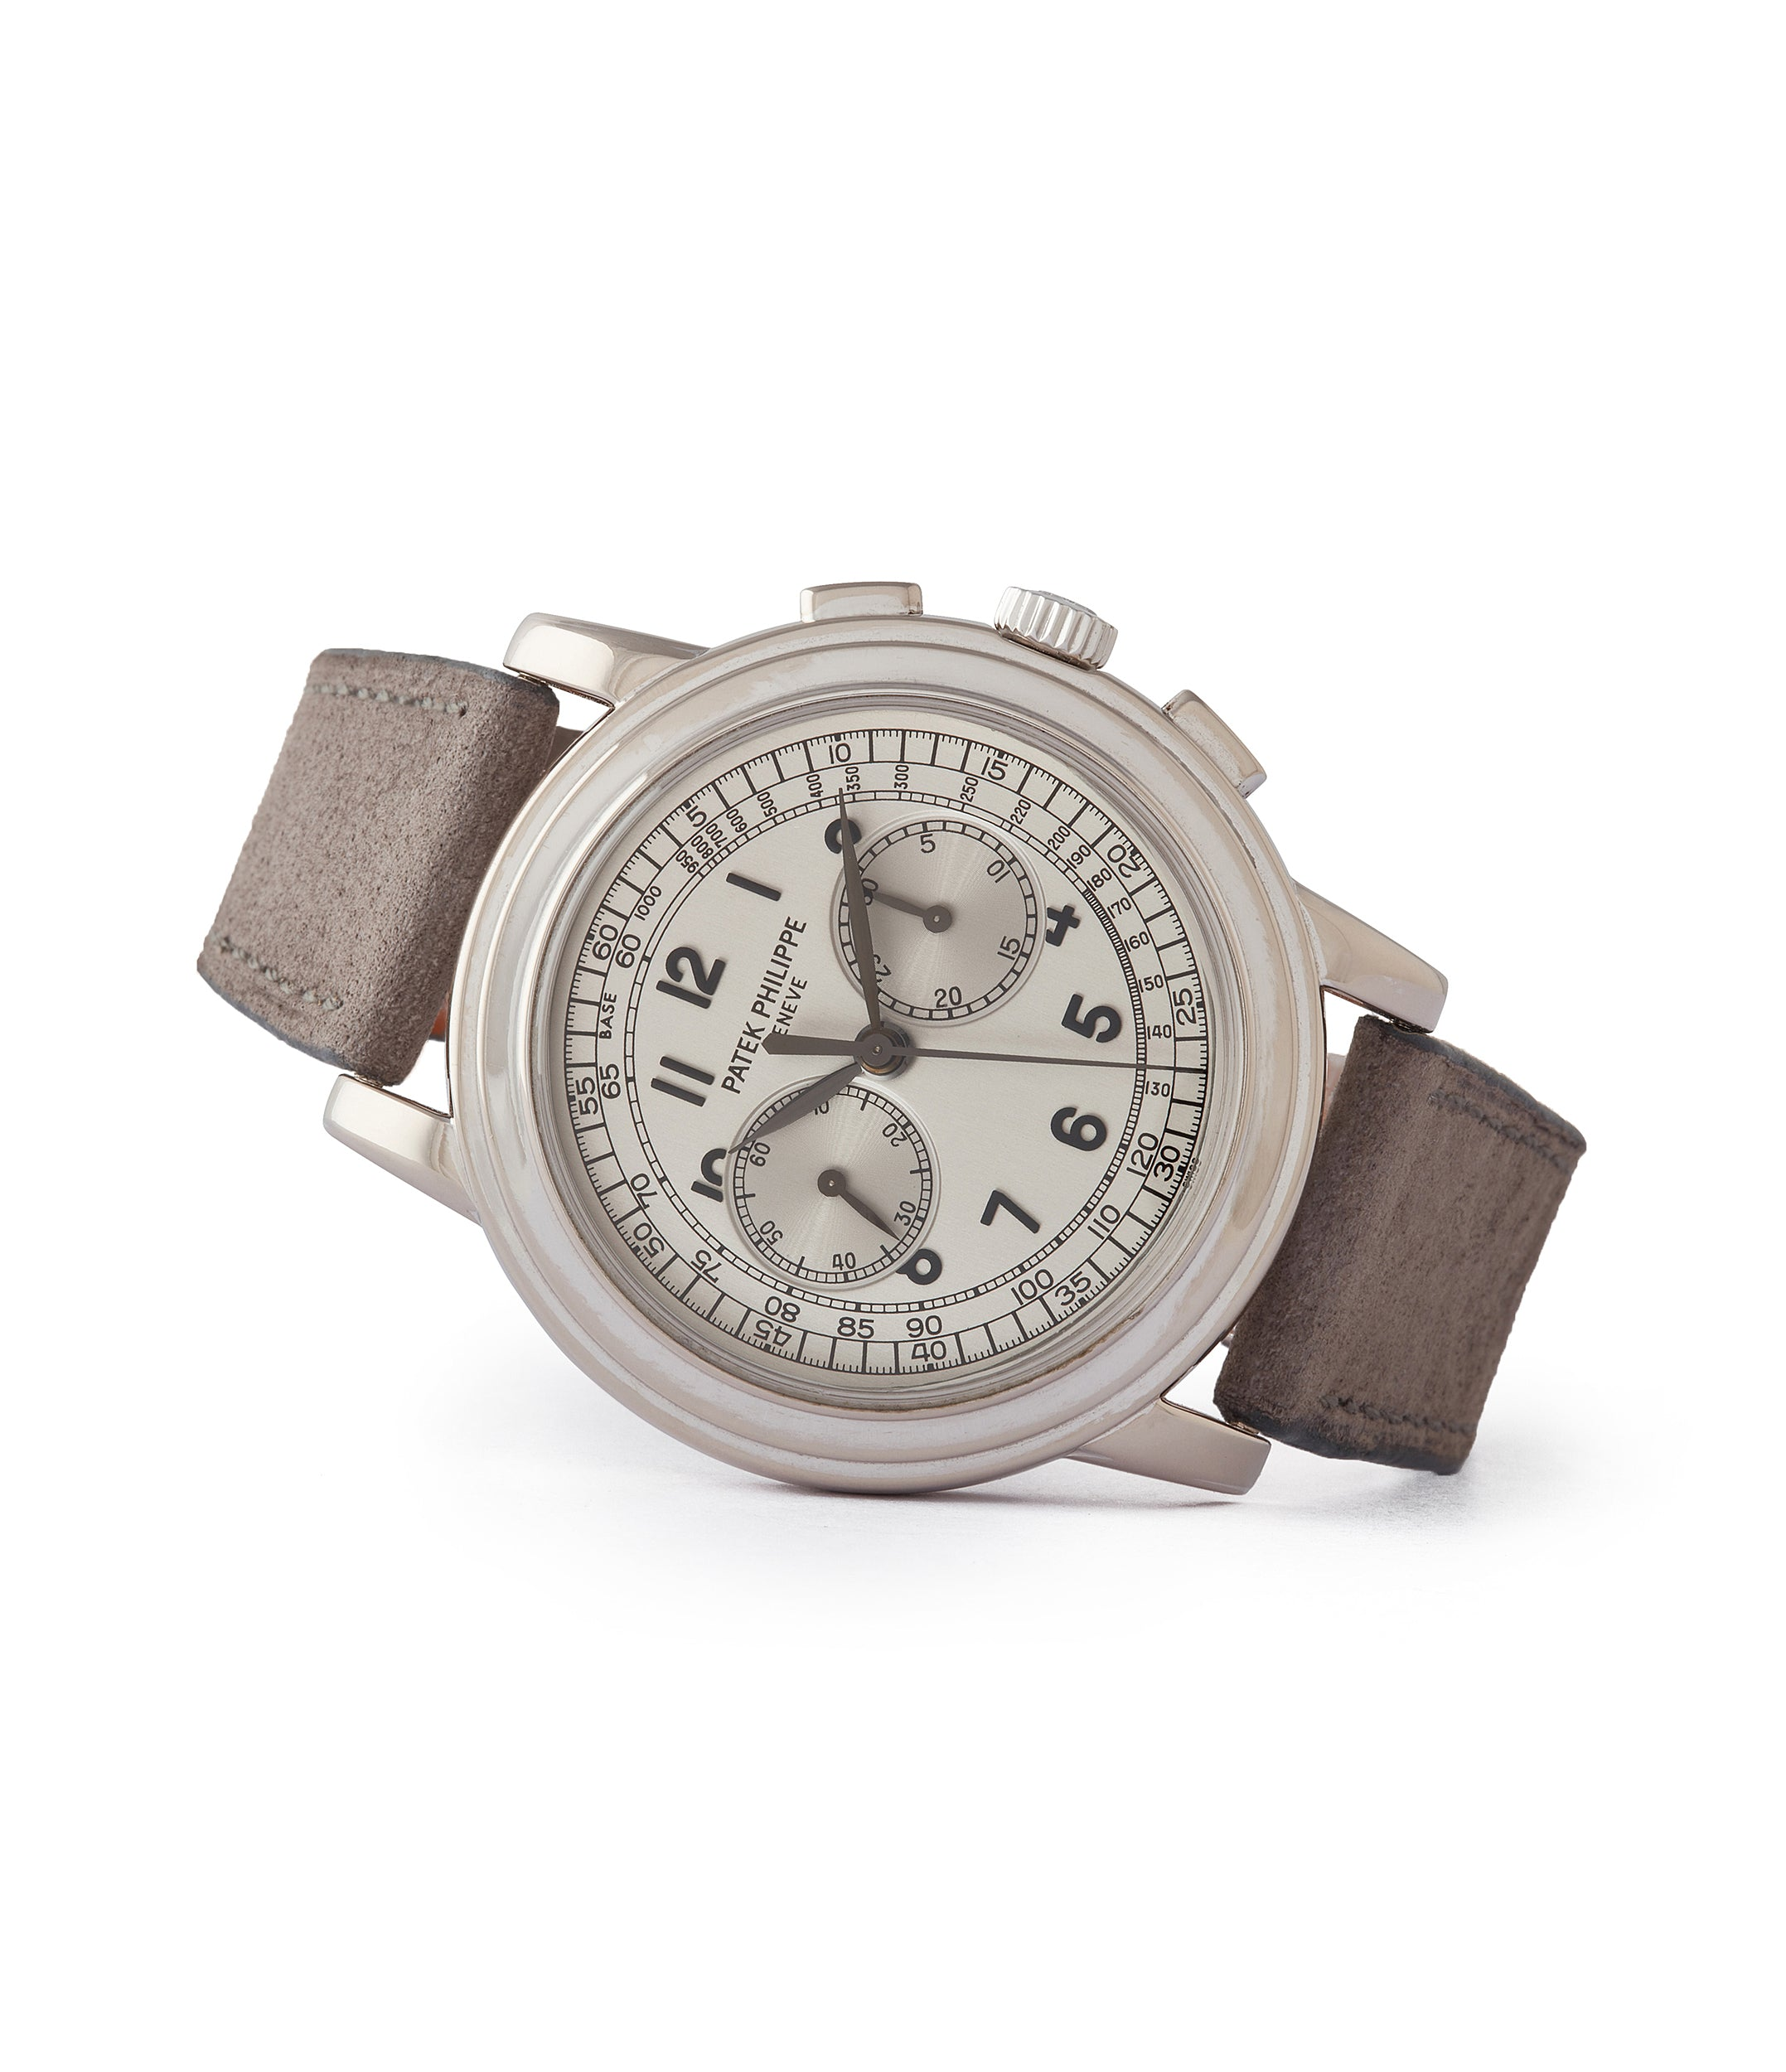 side-shot luxury preowned Patek Philippe 5070G Chronograph dress watch in white gold for sale online at A Collected Man London UK specialist of rare watches